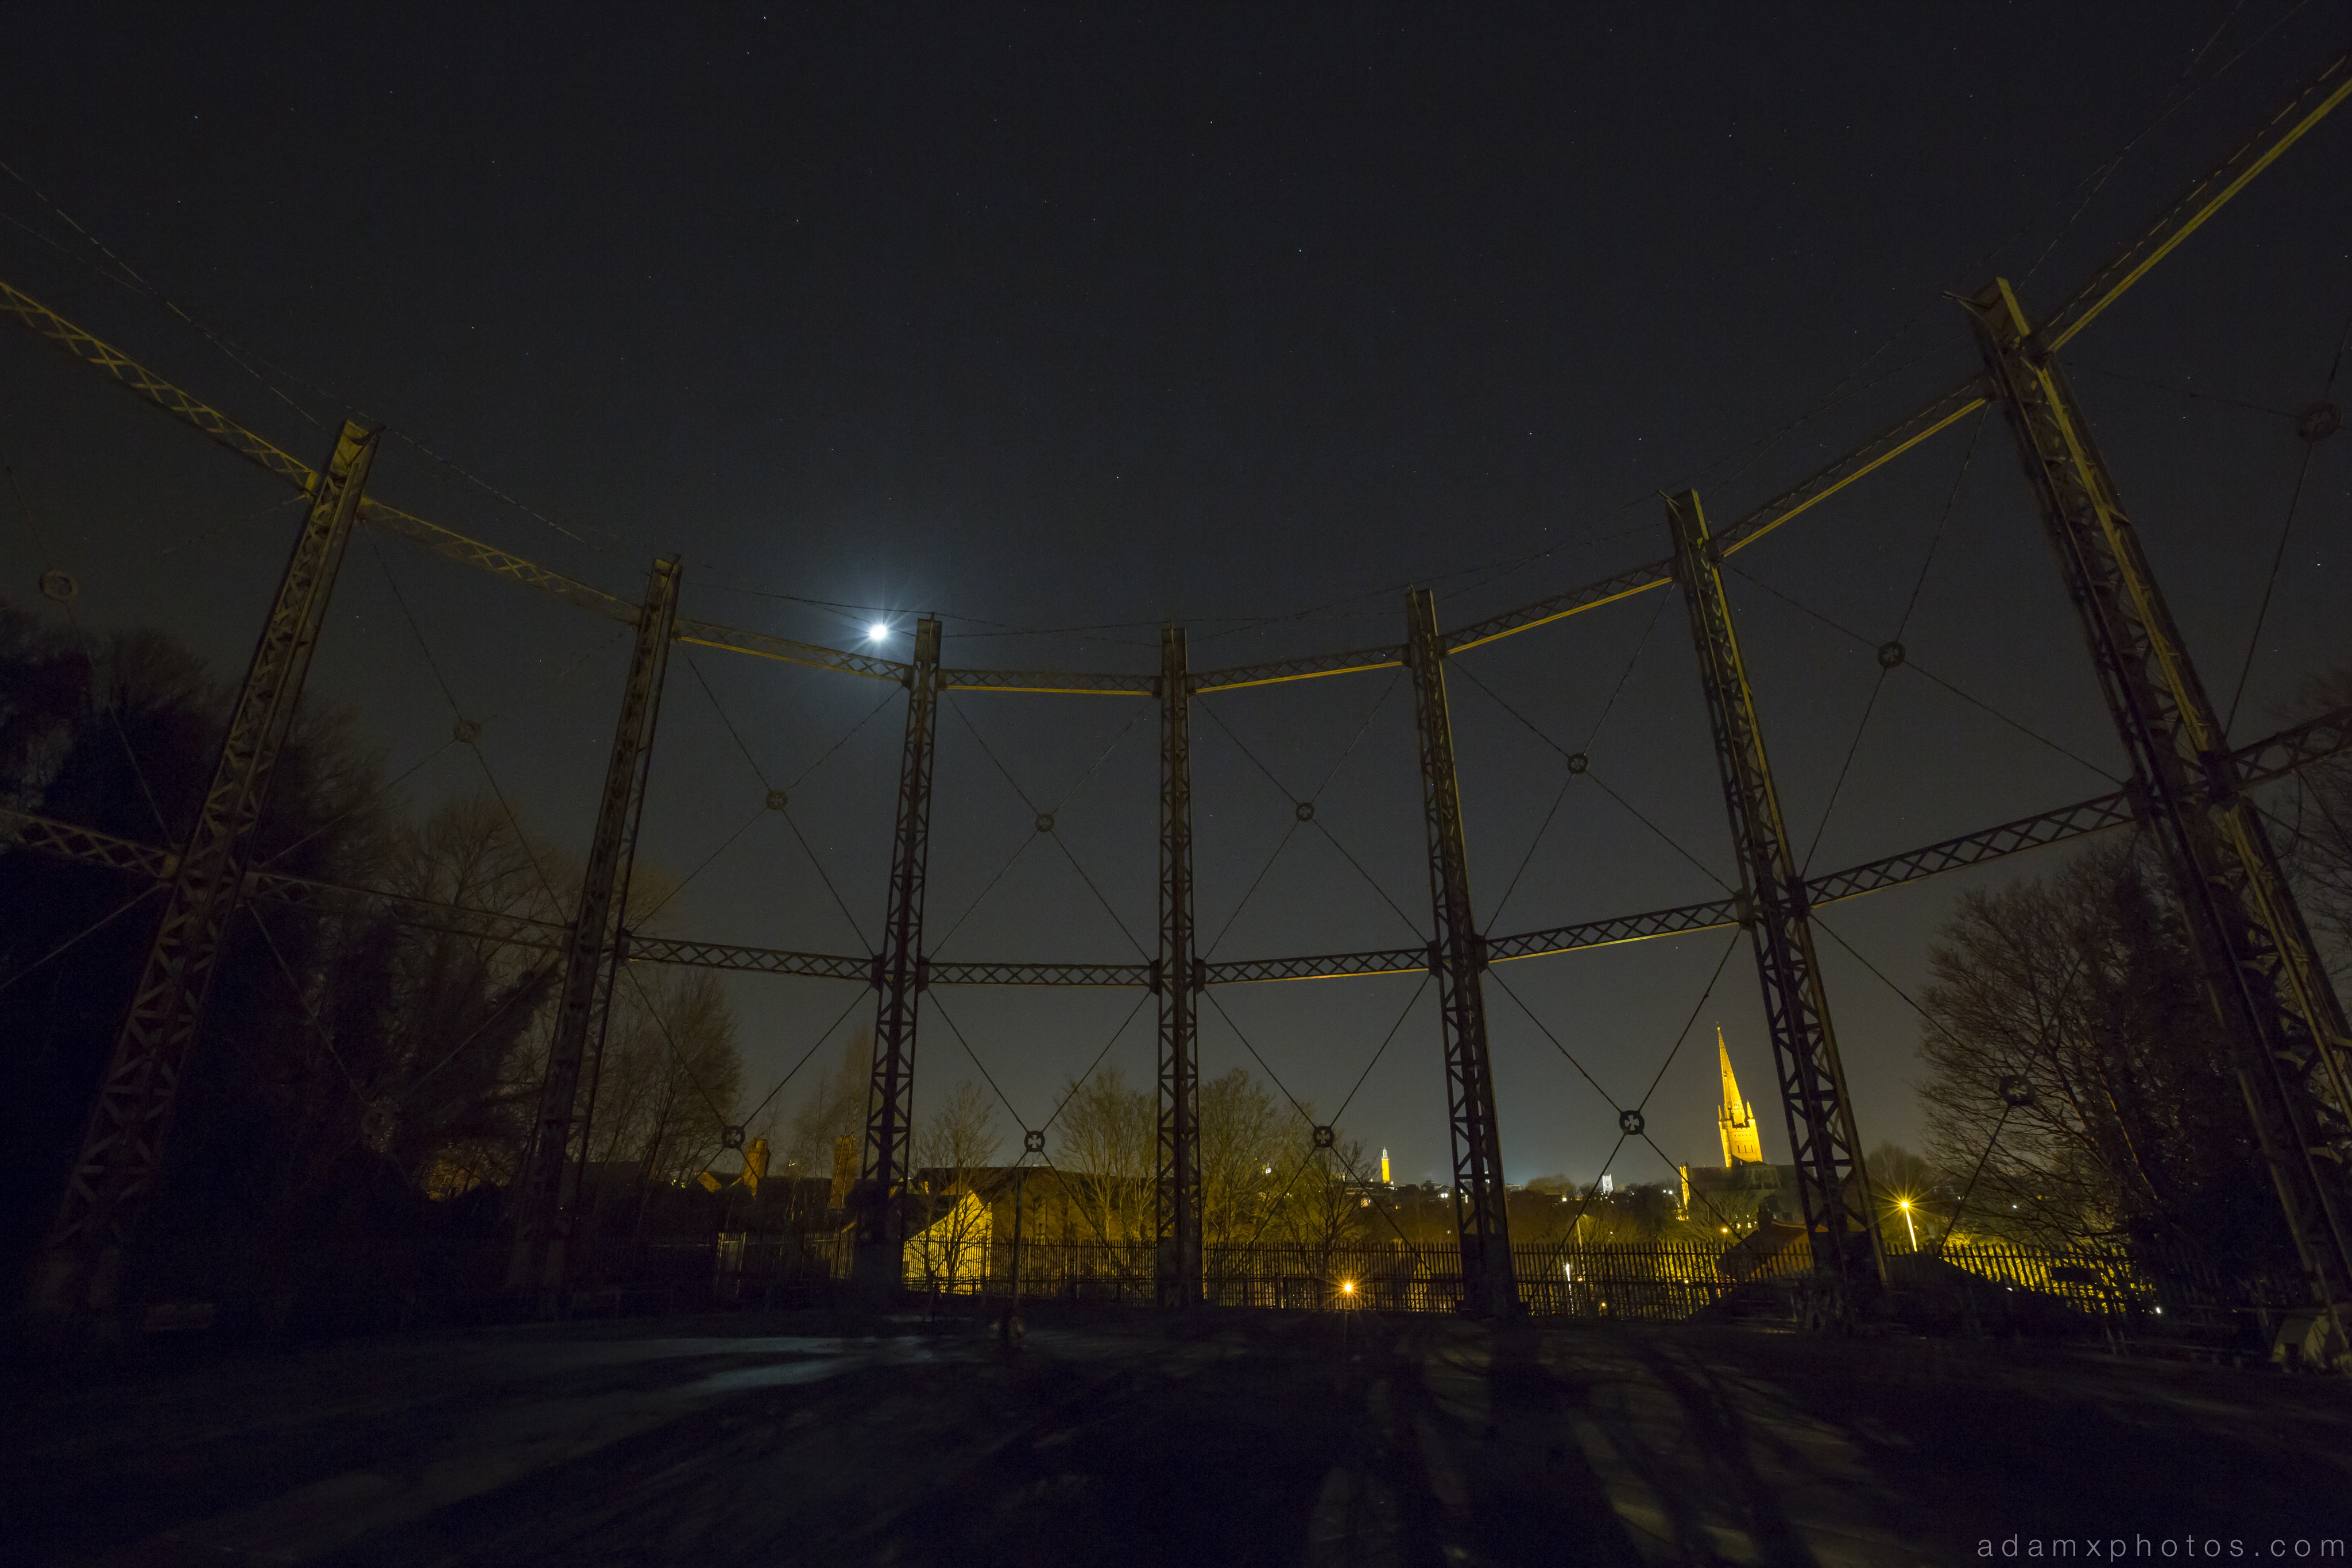 Norwich Gas Holder moonlight Night Nighttime Urbex Adam X Urban Exploration Access 2016 Abandoned decay lost forgotten derelict location creepy haunting eerie